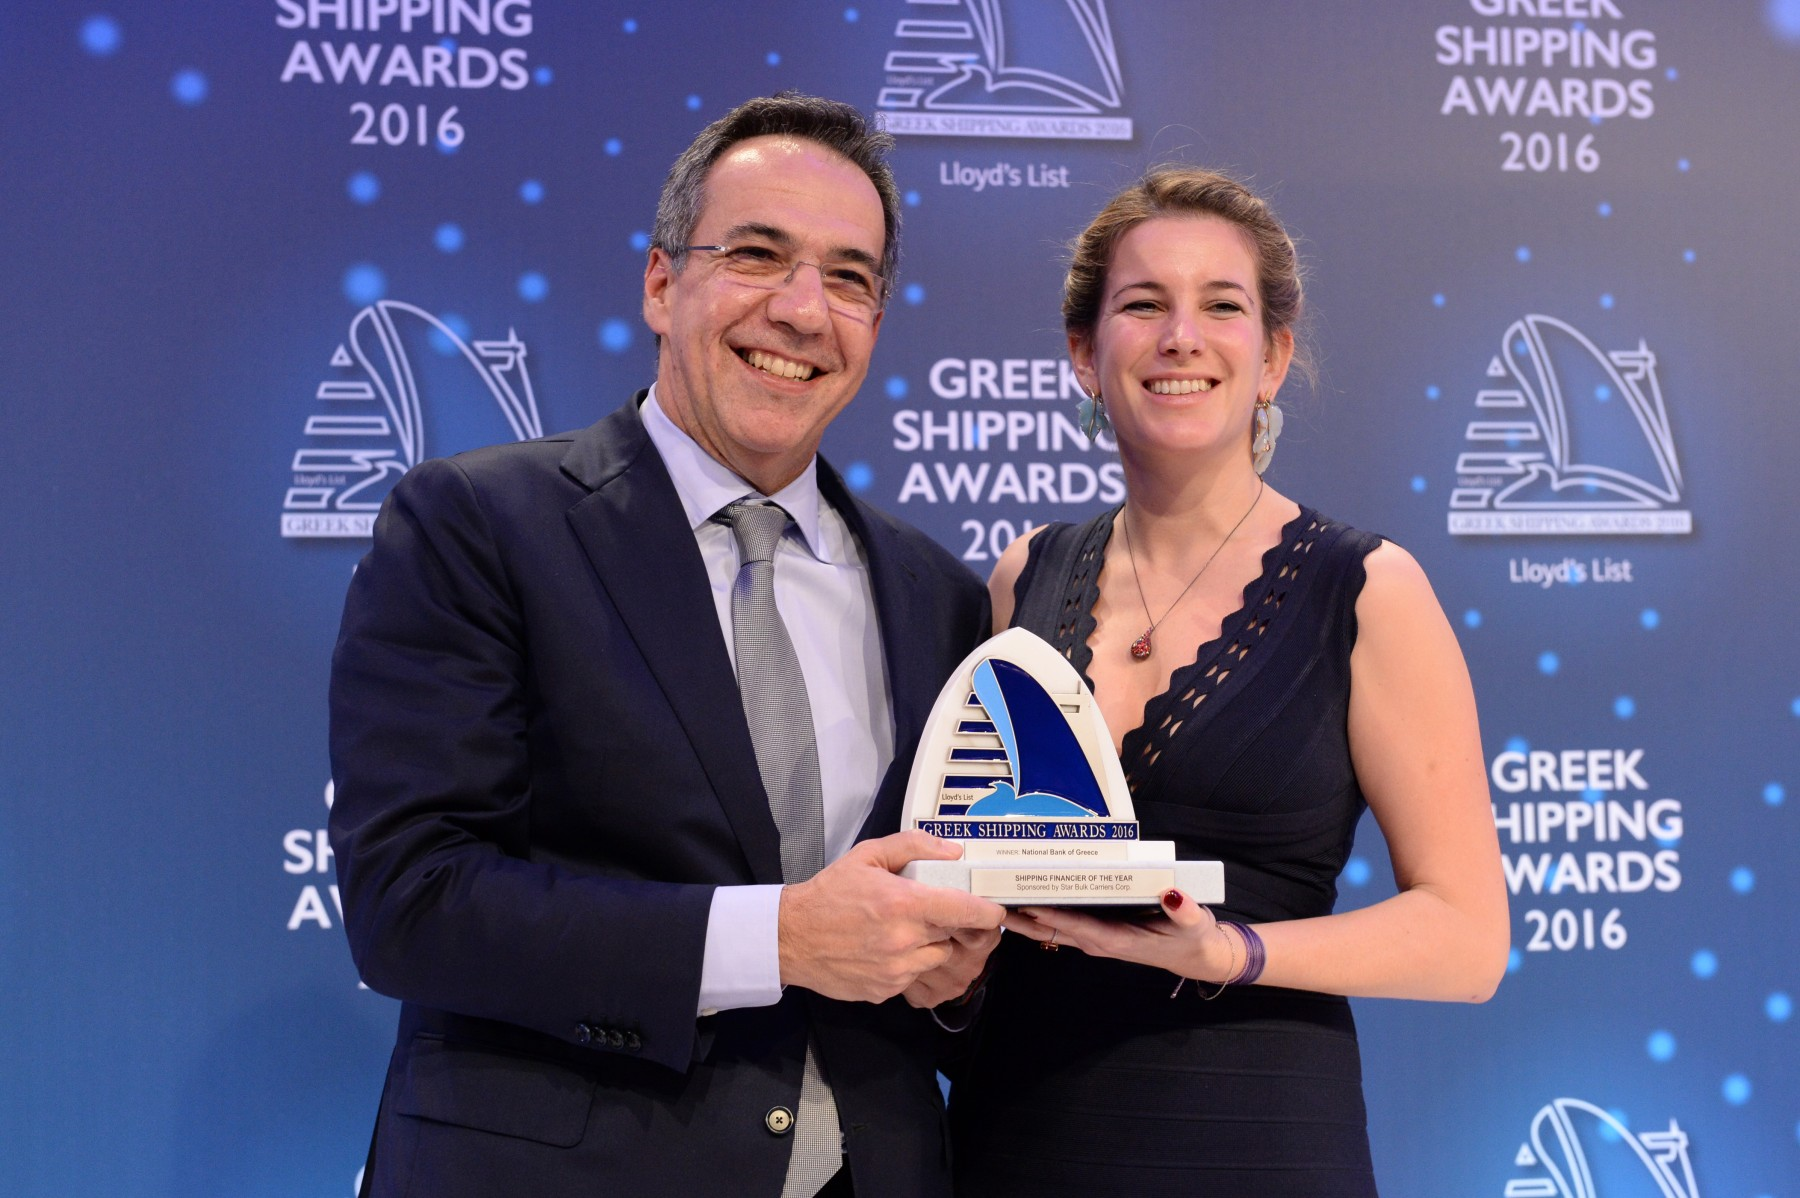 Mr. Leonidas Fragkiadakis of National Bank of Greece accepting the Shipping Financier of the Year Award from Ms. Milena Pappas of sponsor Star Bulk Carriers Corporation